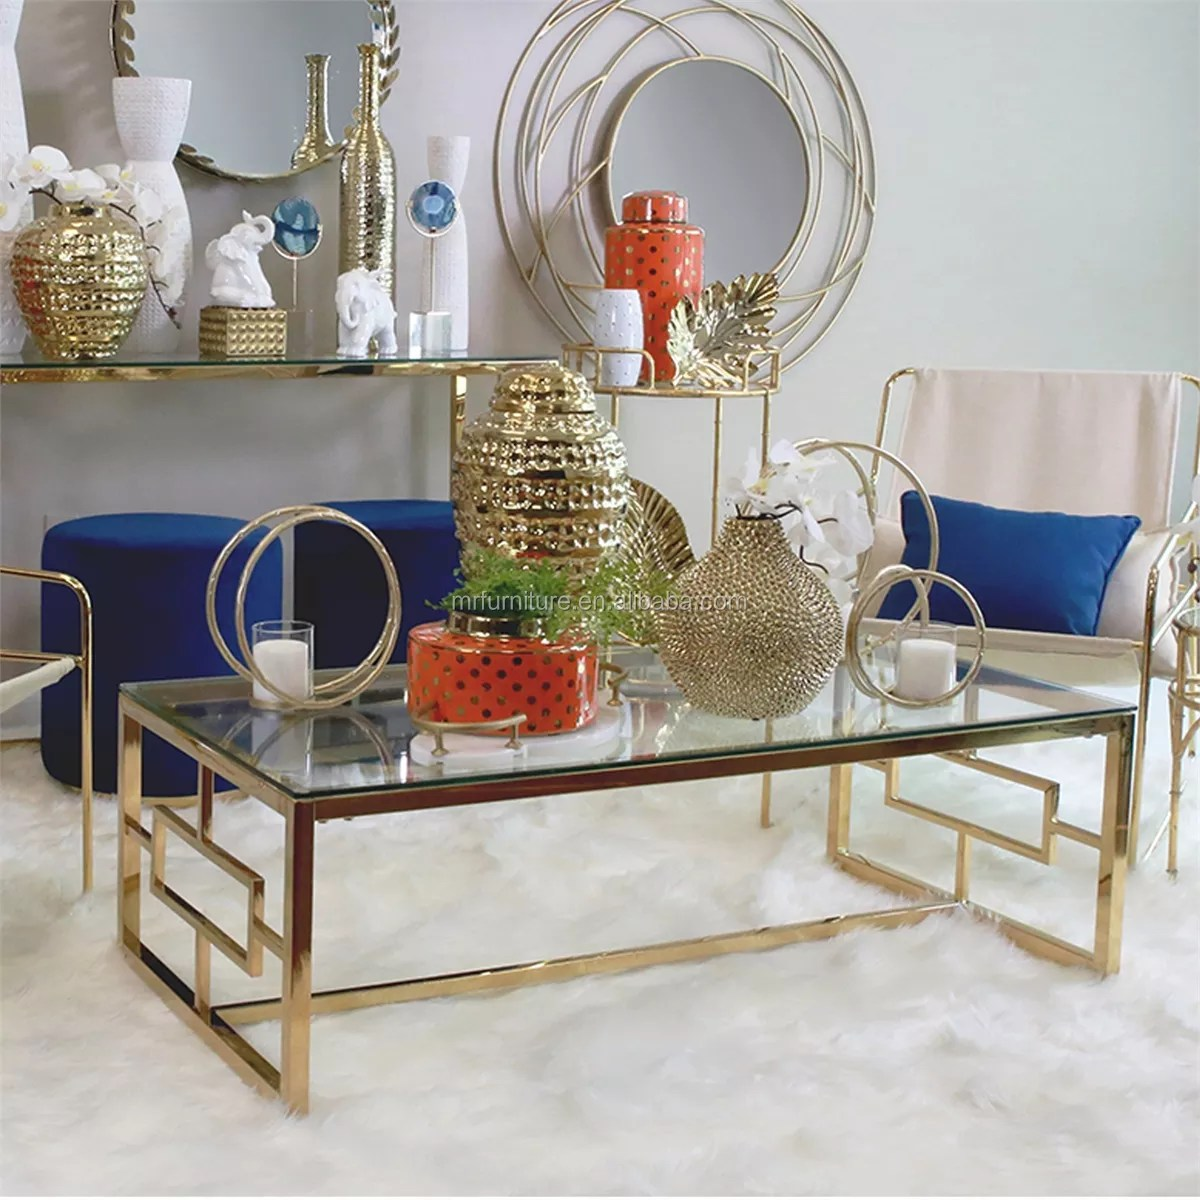 glass stainless steel coffee table in gold buy glass gold coffee table gold frame coffee table stainless steel glass cocktail table product on